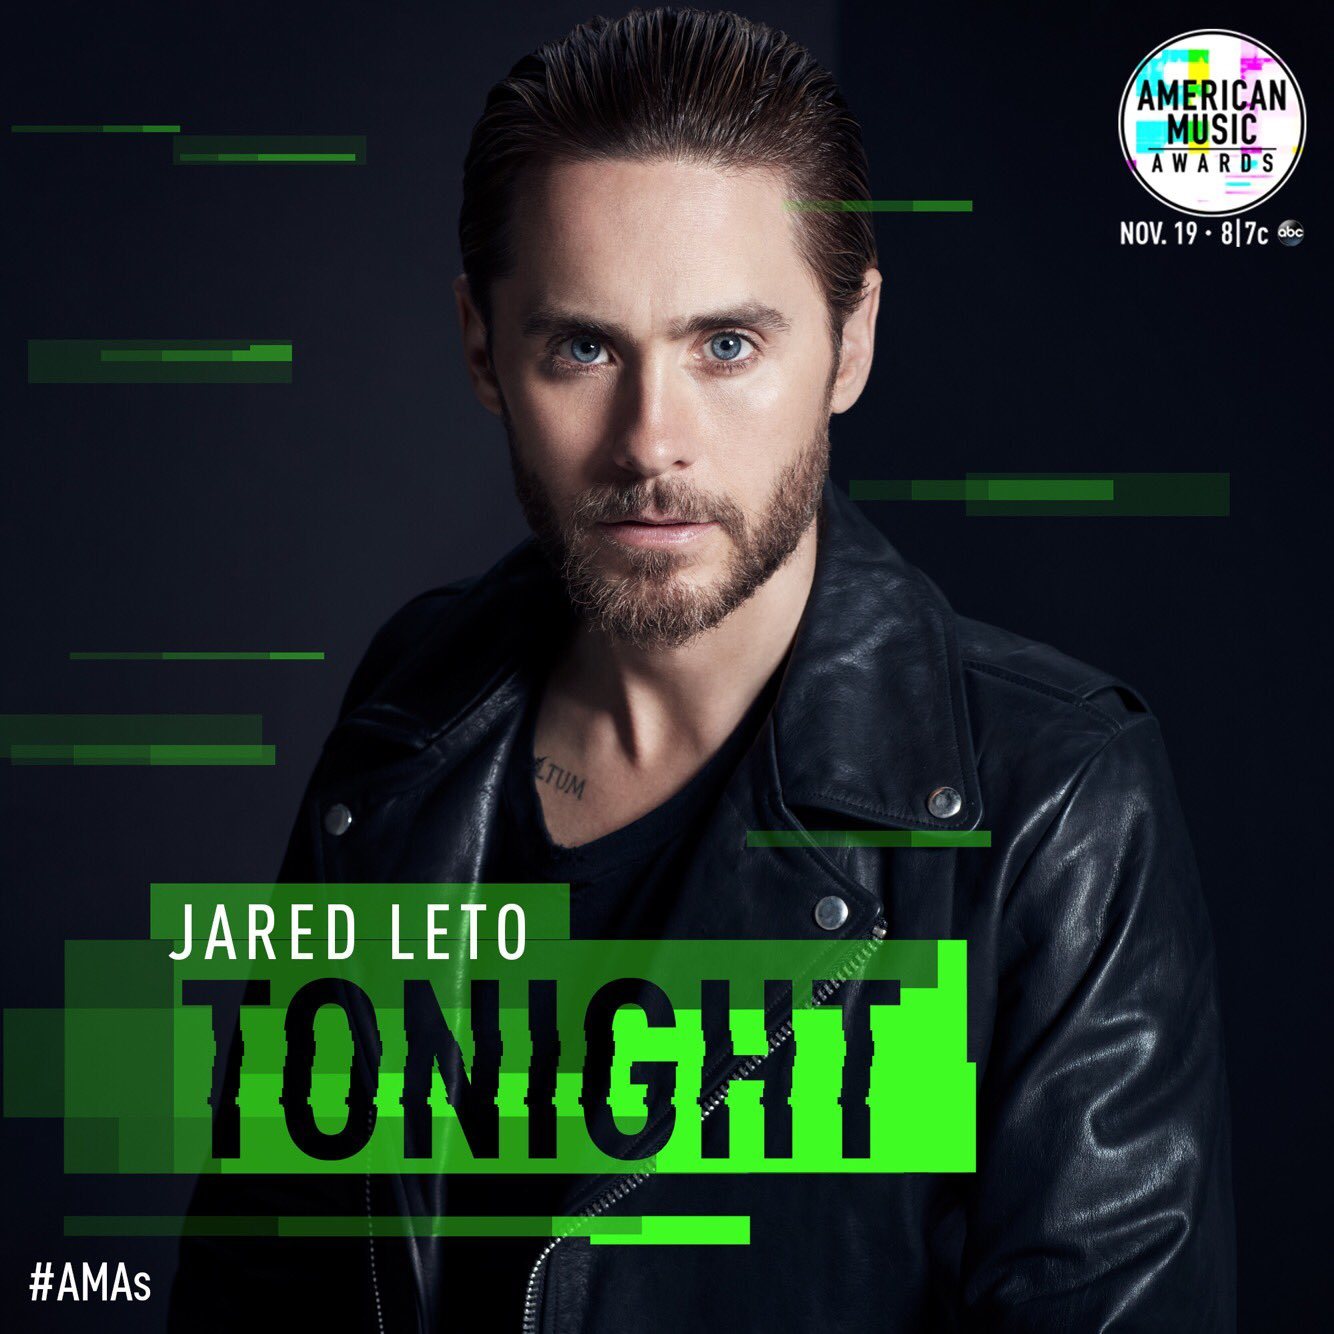 Tonight's the night. Tune in to see our very own @JaredLeto presenting at this year's #AMAs, 8|7c on ABC. https://t.co/gdT25eD0x9